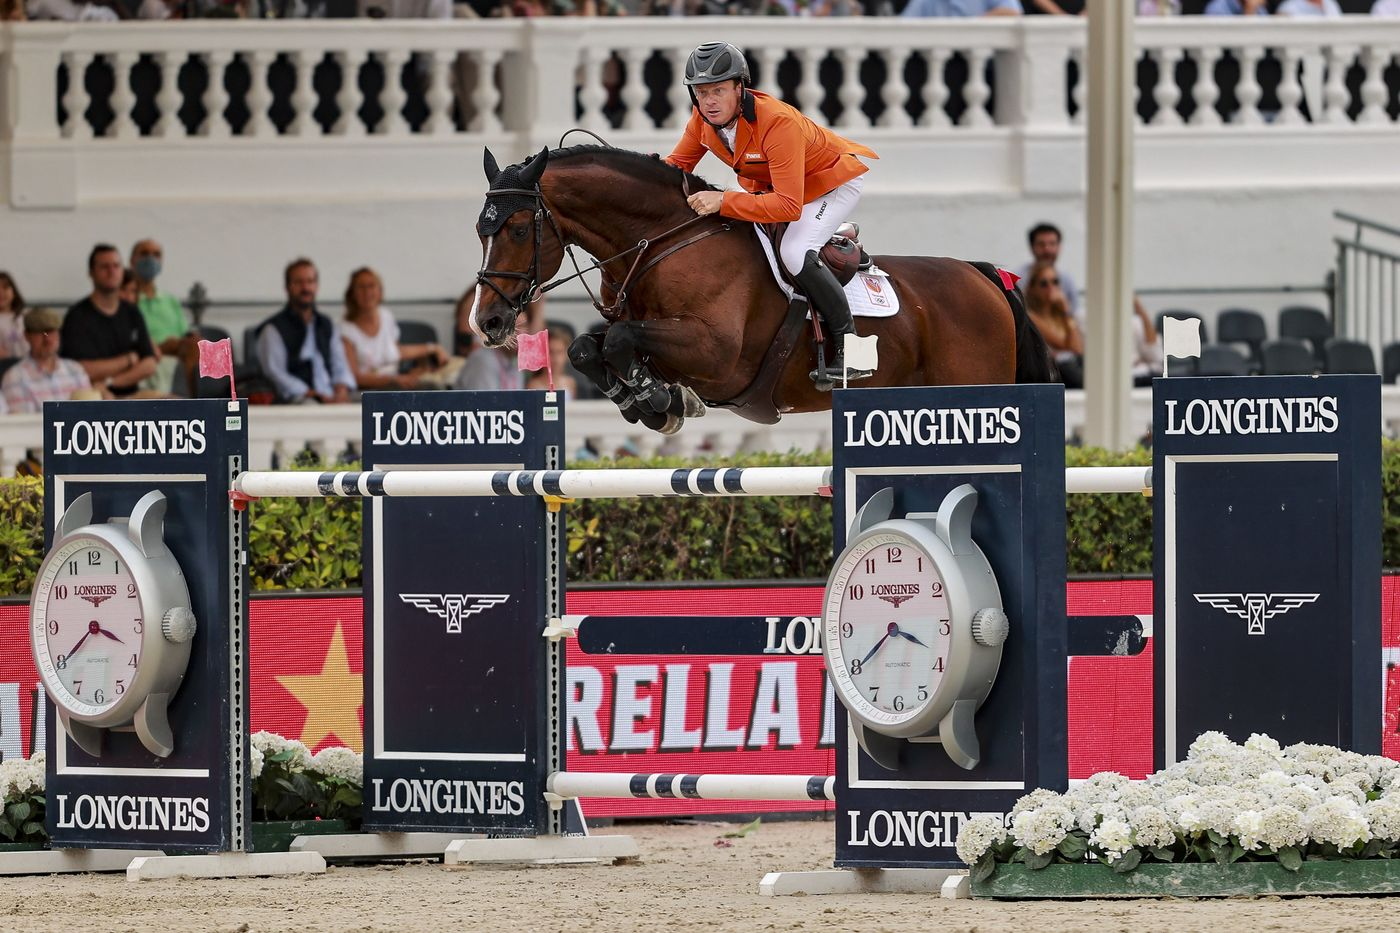 Longines Show Jumping Event: The world's elite riders return to the magnificent city of Barcelona to contend for the Longines FEI Jumping Nations Cup Final  3